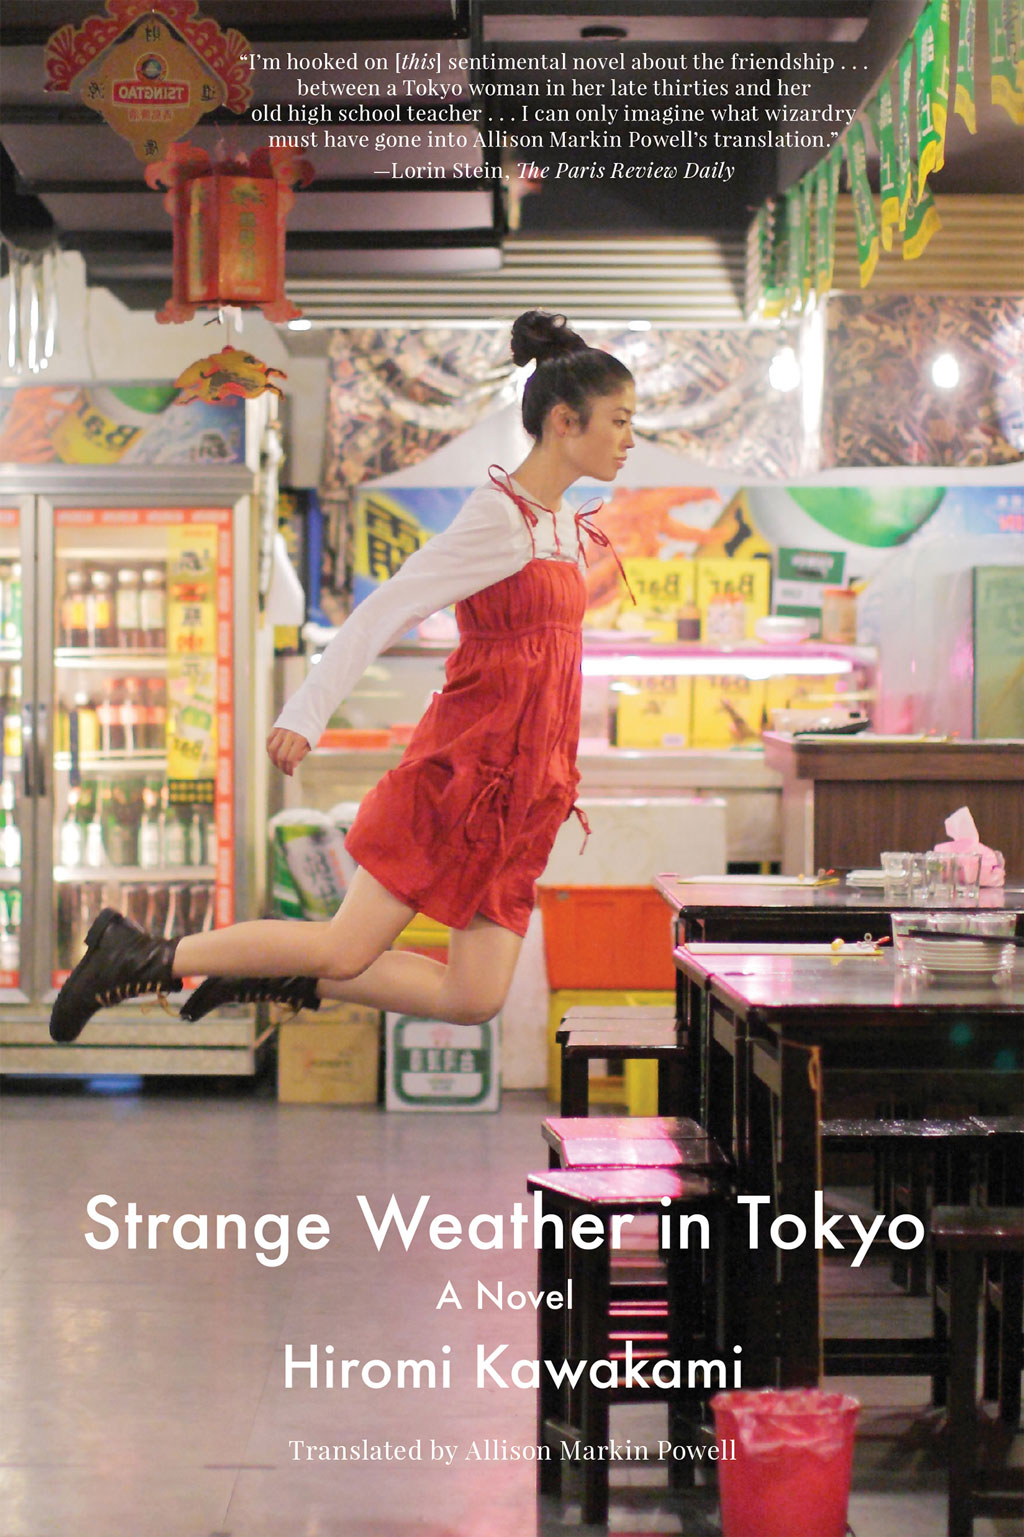 Strange Weather in Tokyo cover art. A woman in a red dress floats above the floor of a convenience store